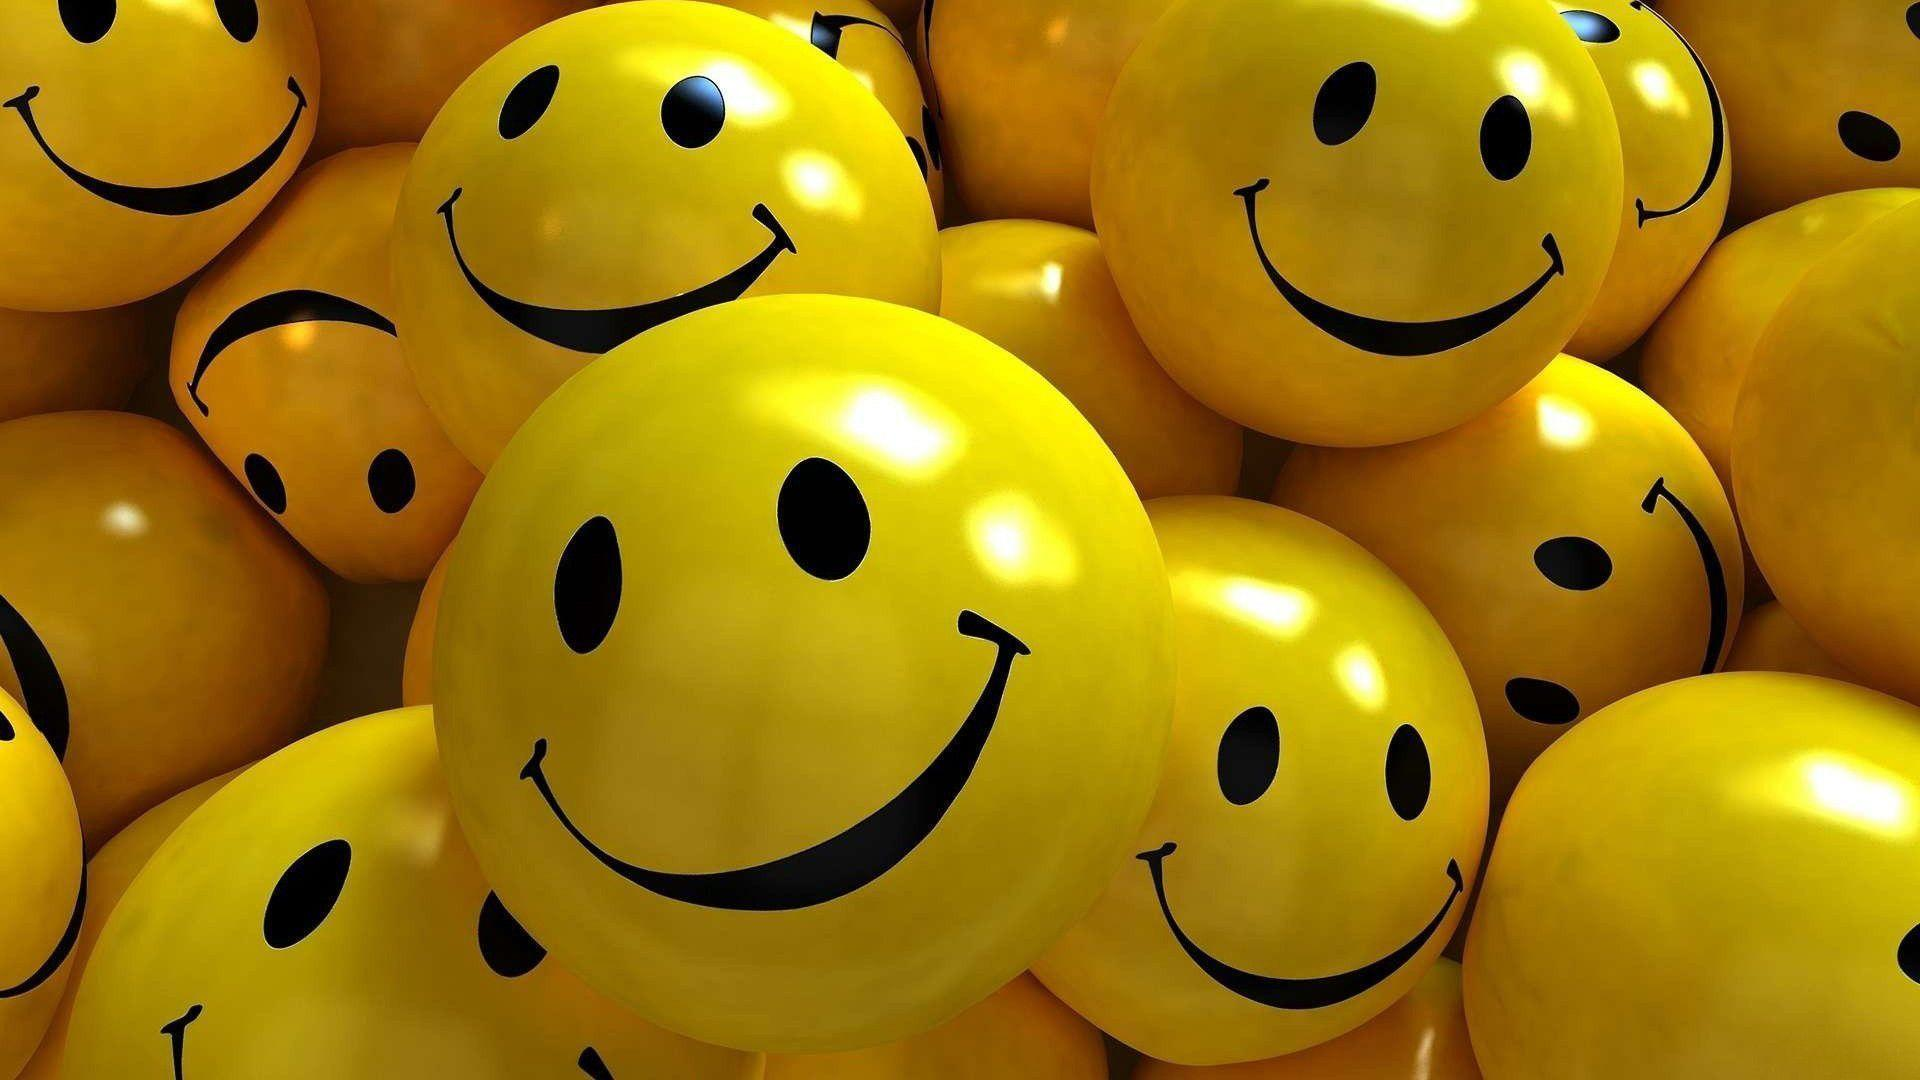 Free Sad Smiley Images With Quotes Download Free Clip Art Free